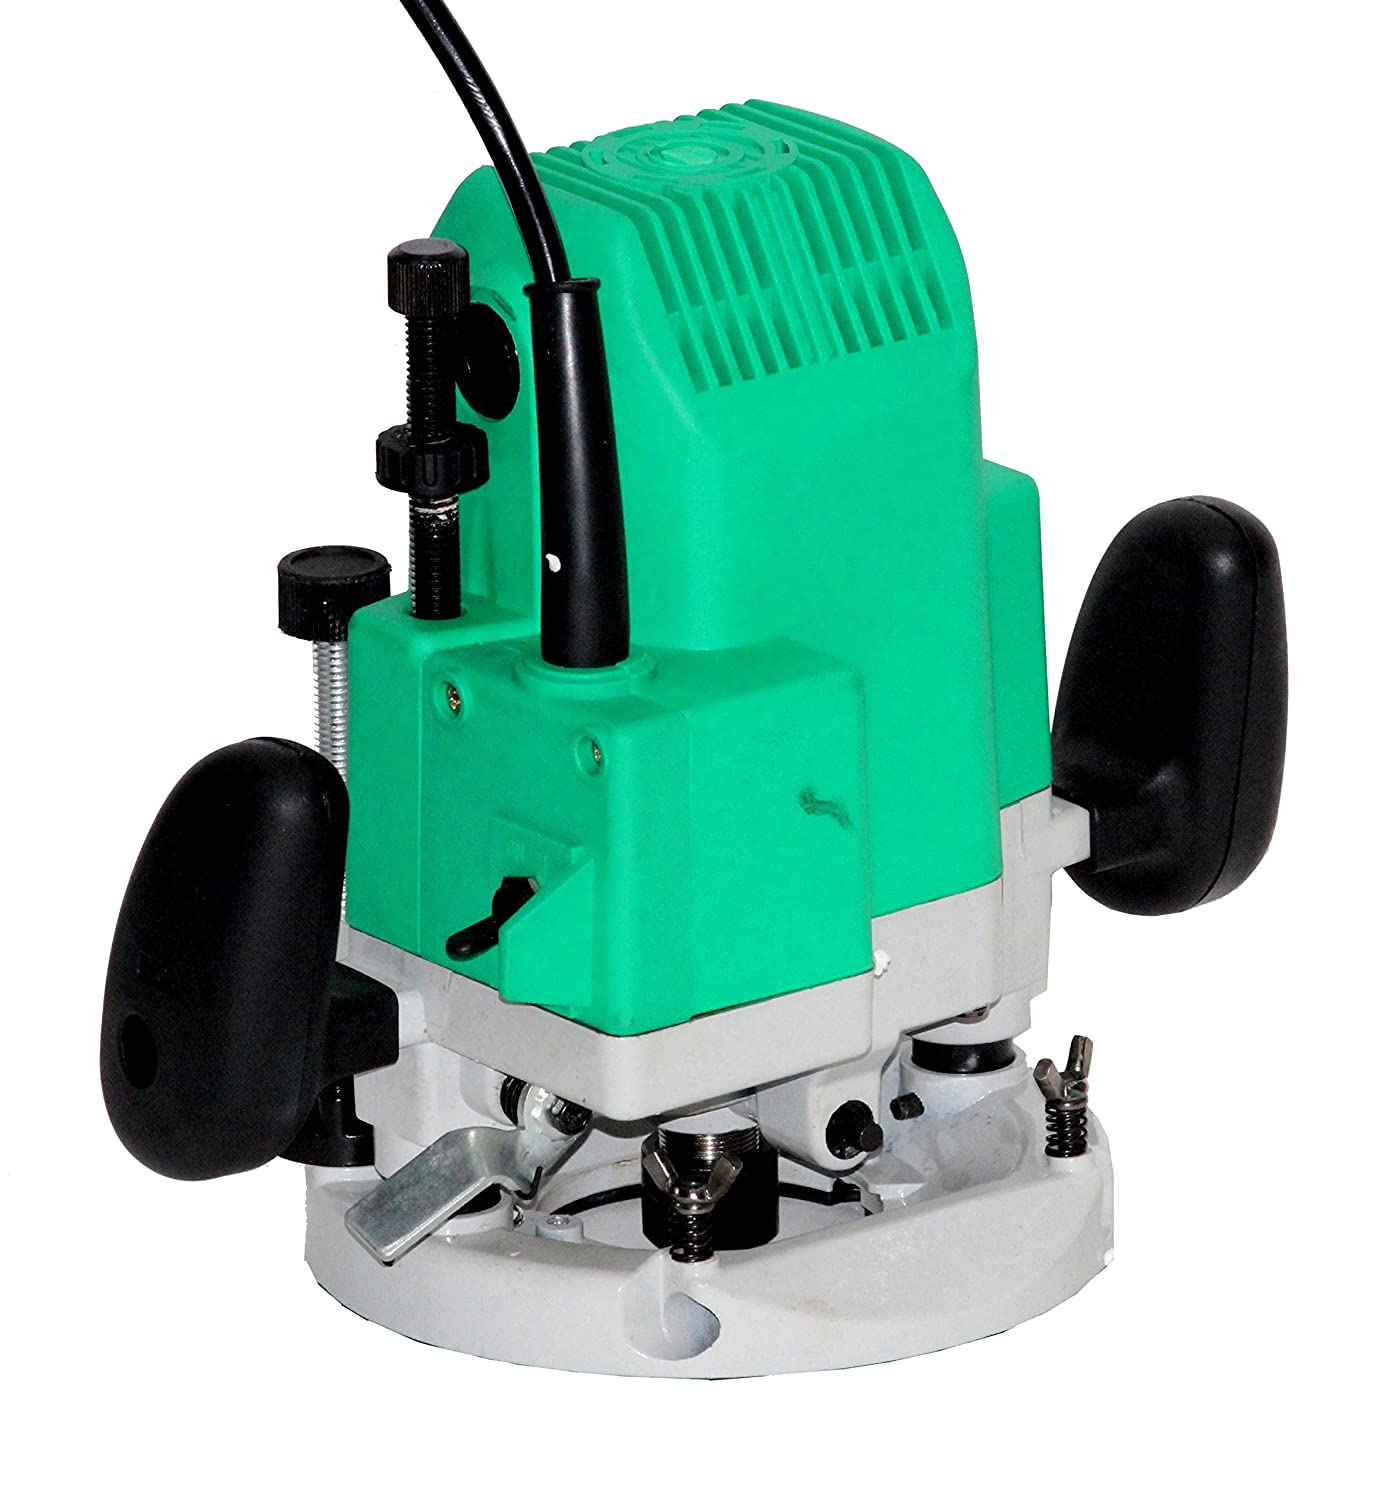 Himax Wood Working Router Machine (Green)